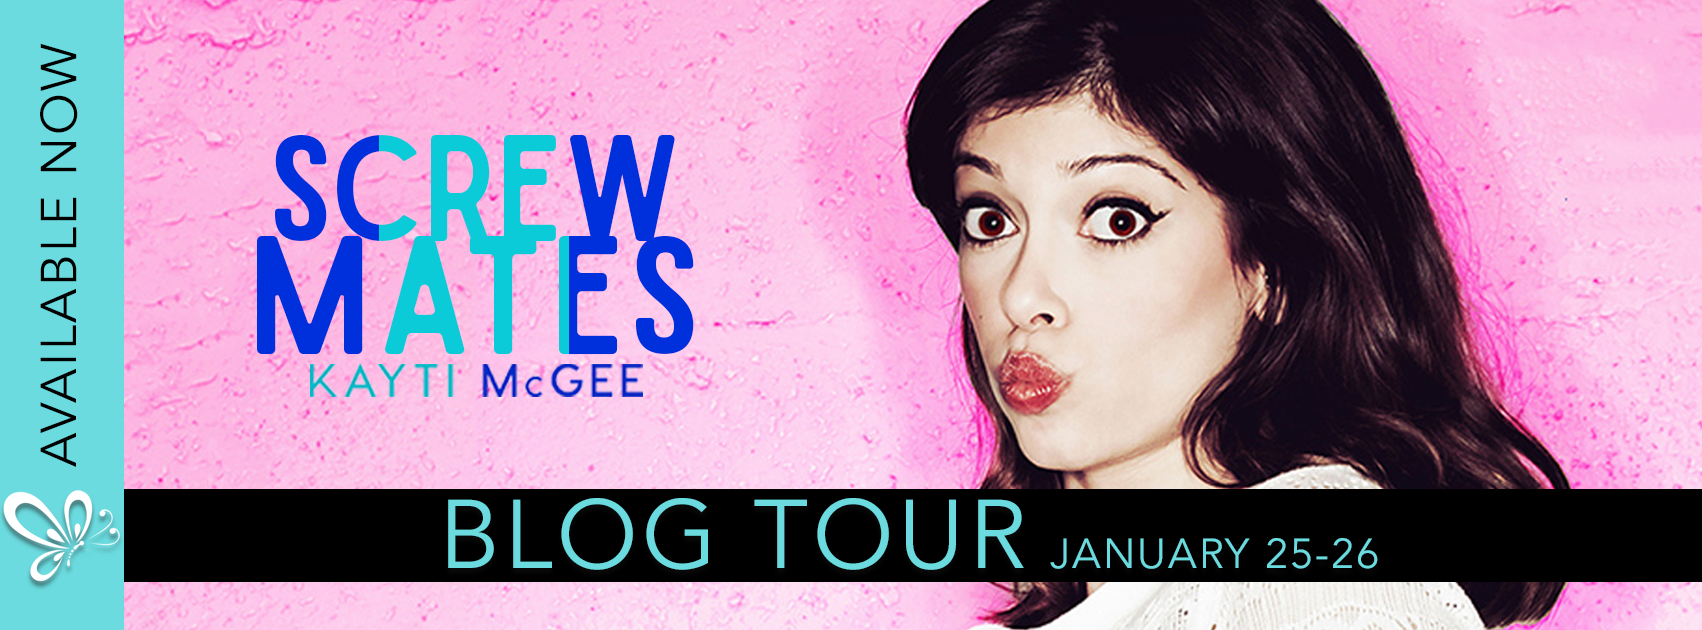 Screwmates by Kayti Mcgee | Blog Tour & Review